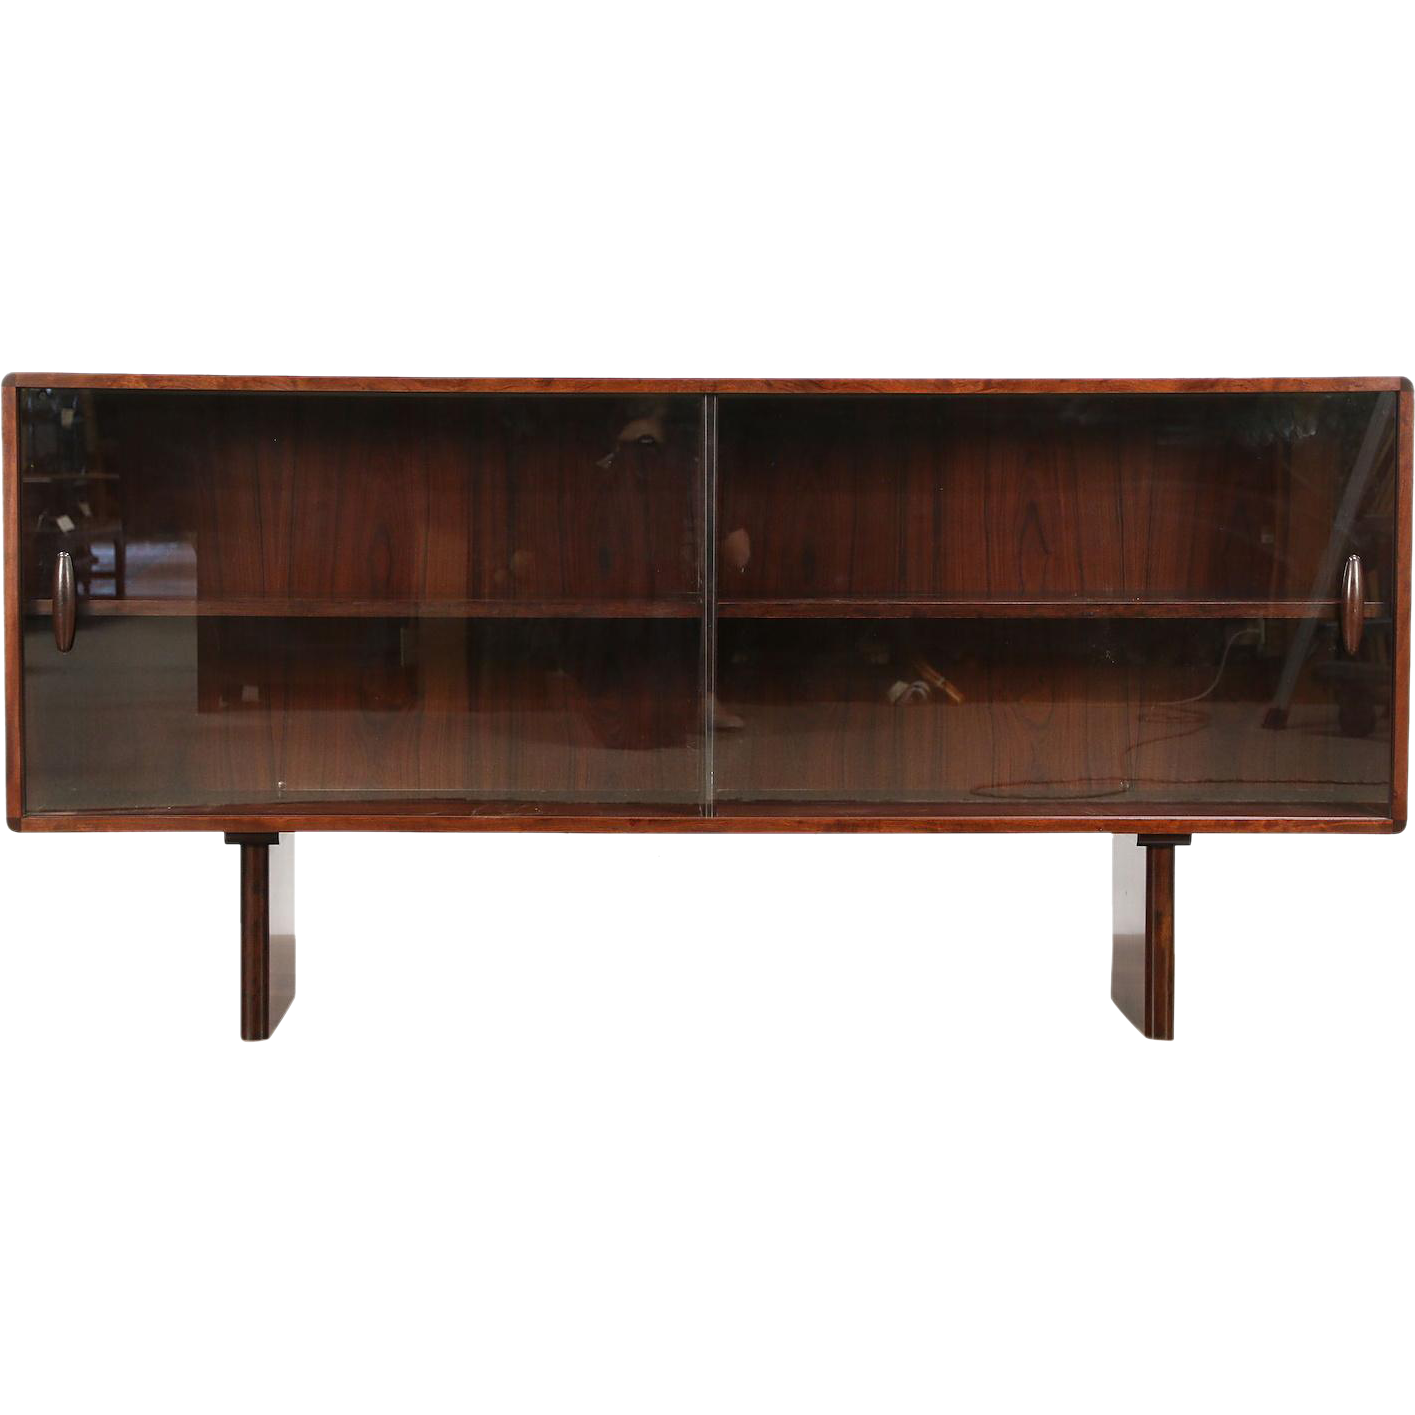 Rosewood Midcentury Modern Vintage Bookcase, China Cabinet or TV Console Cabinet